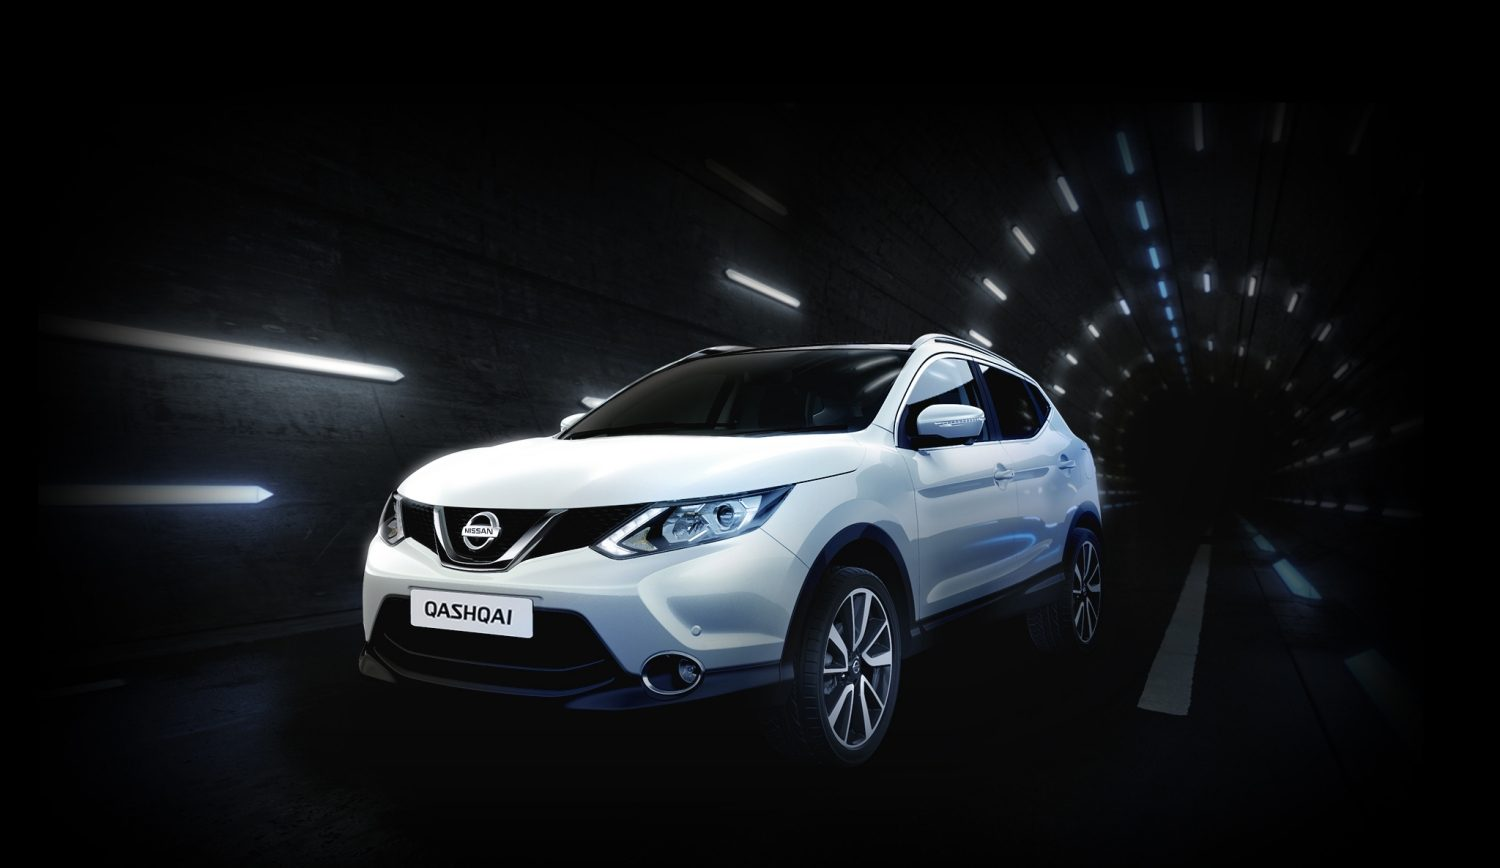 Nissan Qashqai | Small SUV video demo